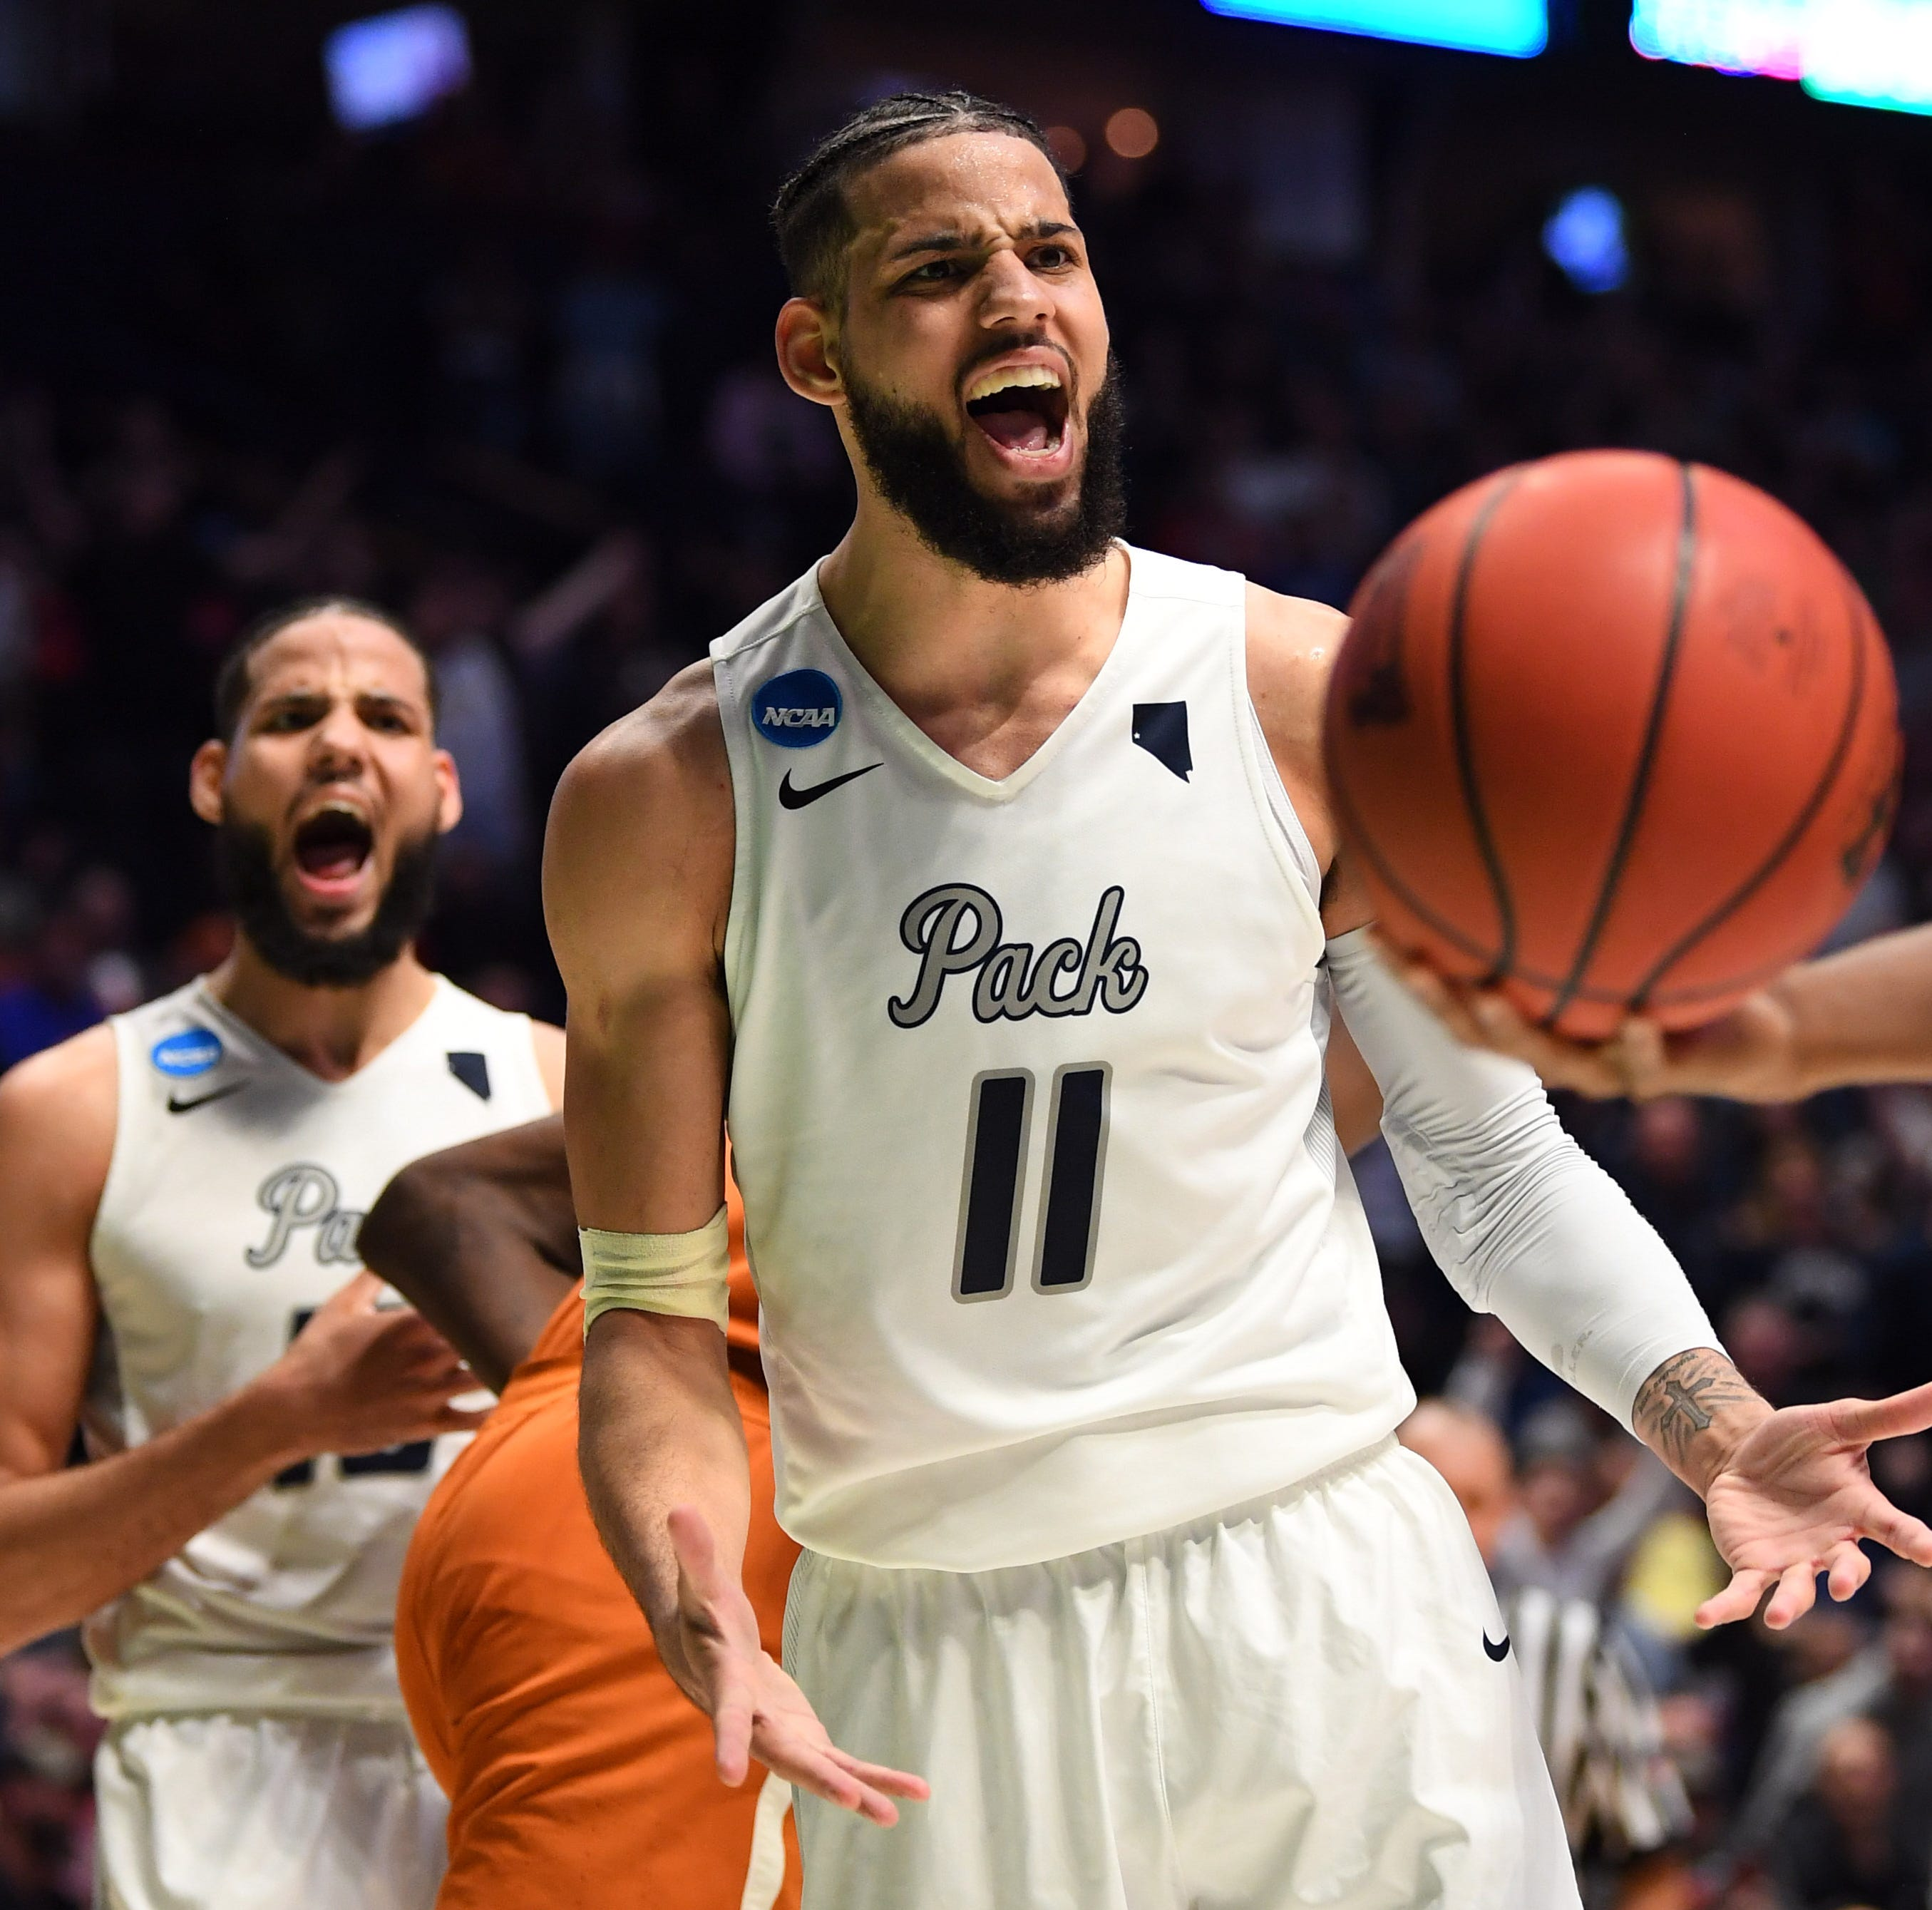 NCAA Tournament: Florida vs. Nevada live updates